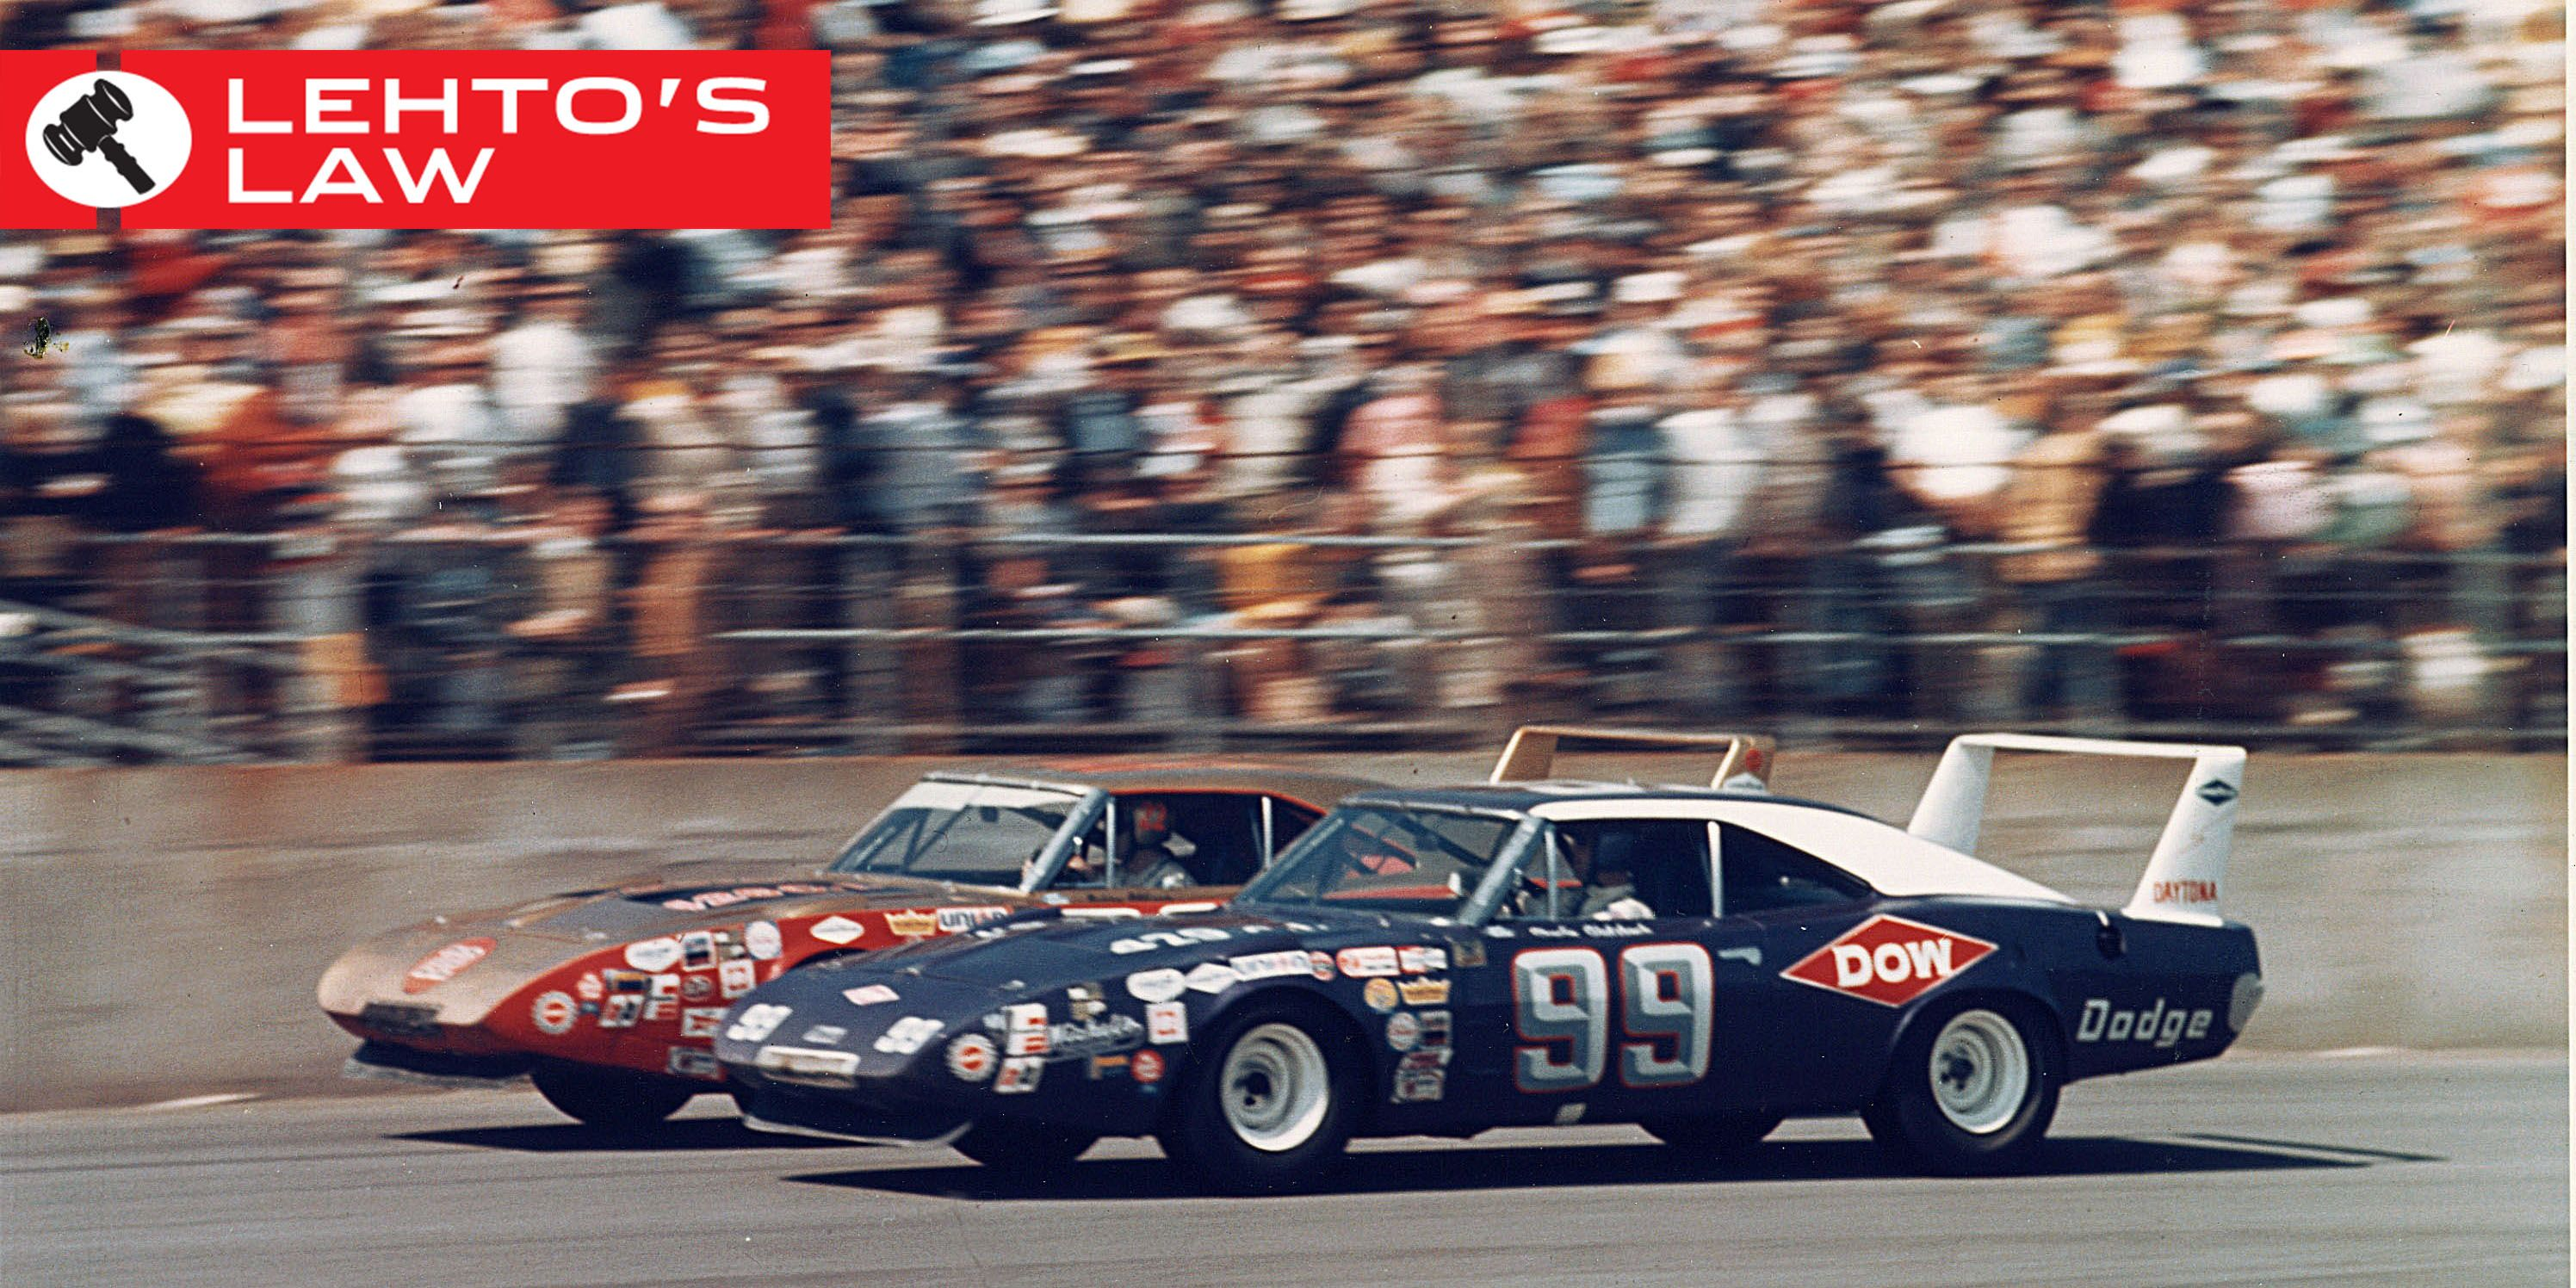 Why The Charger And Superbird Had That Huge Wing Awesome Vintage Race Cars